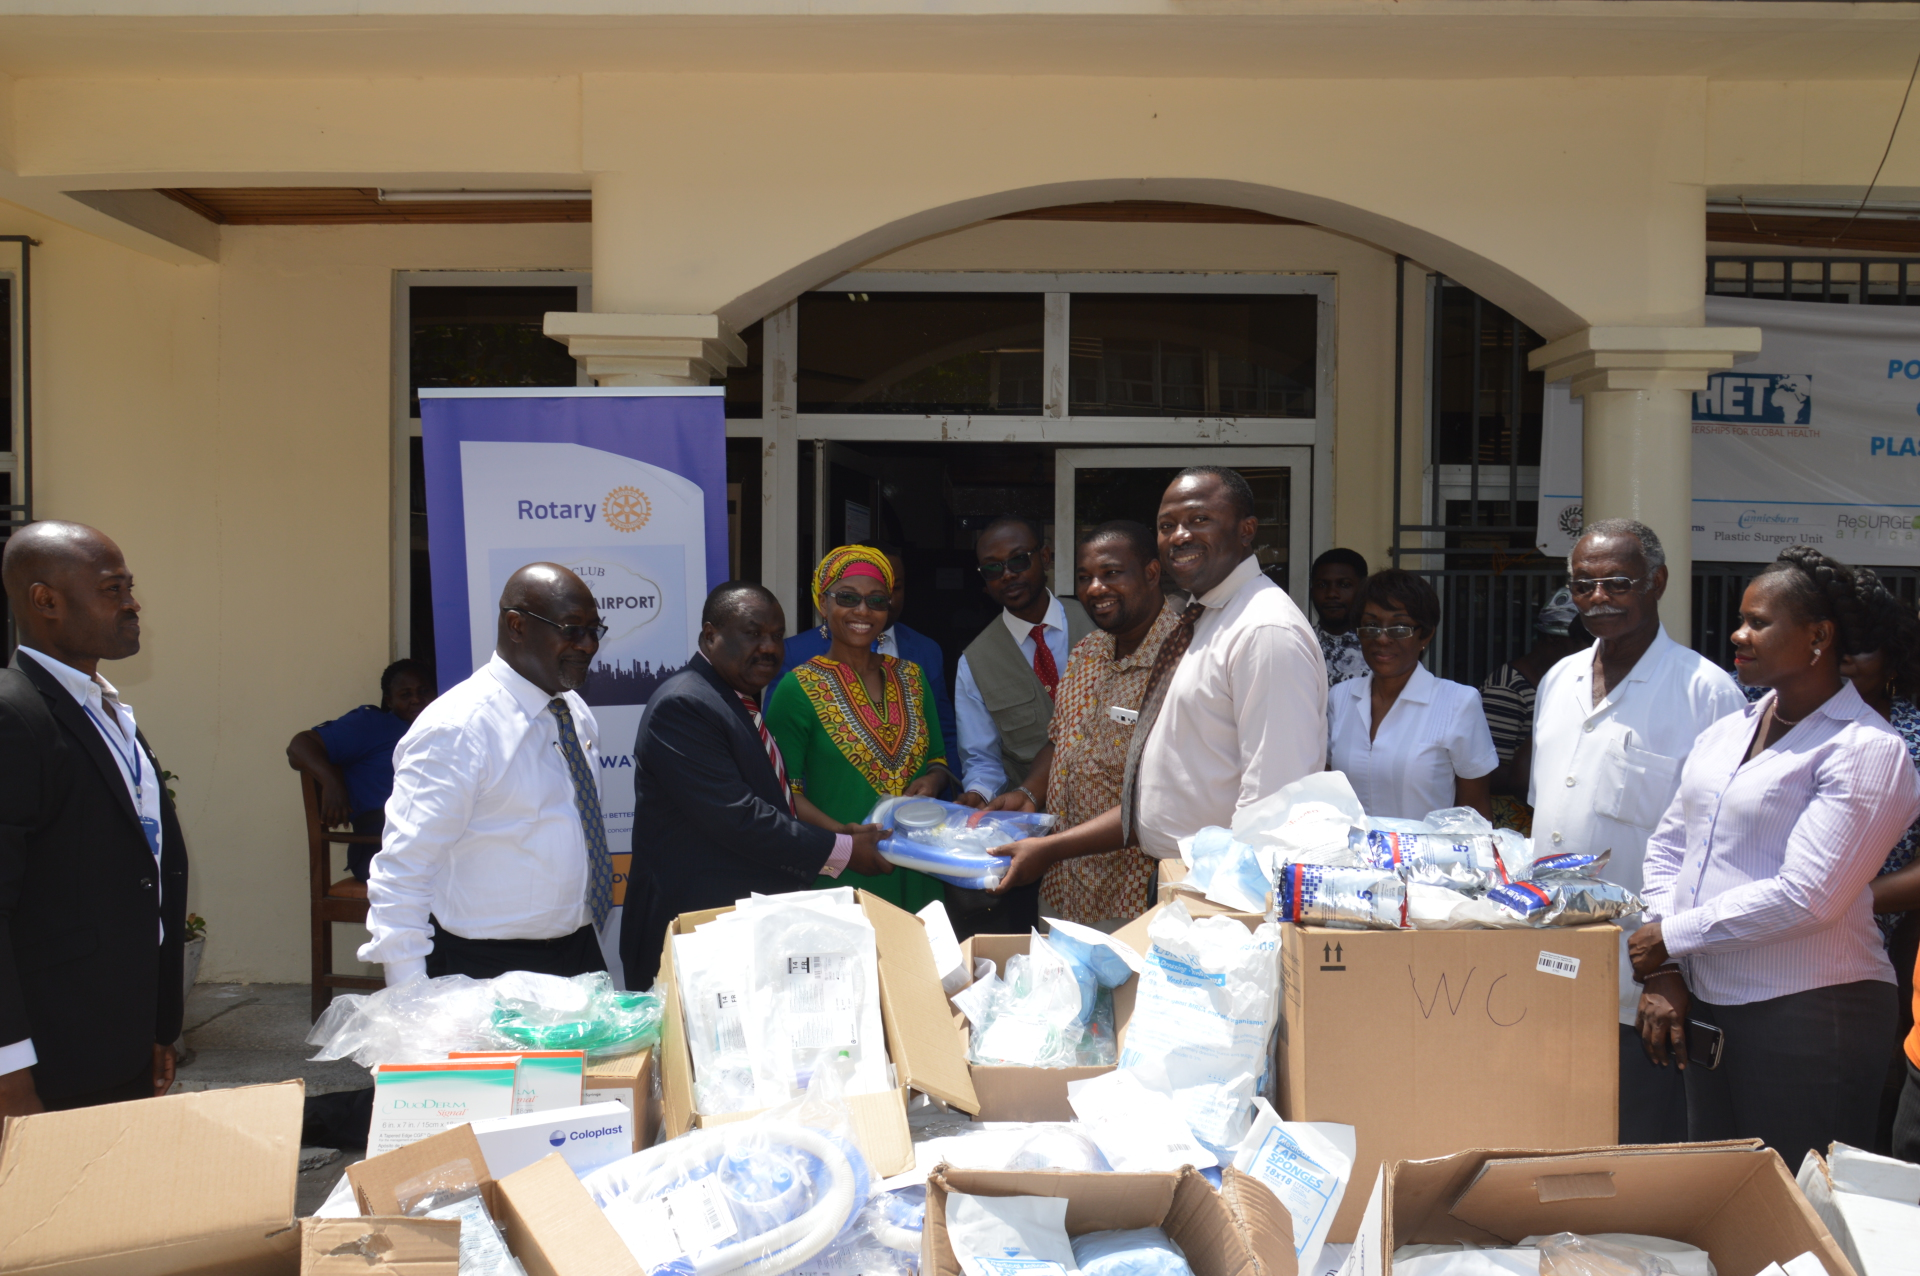 ROTARY CLUB DONATES TO PLASTIC SURGERY AND BURNS CENTRE